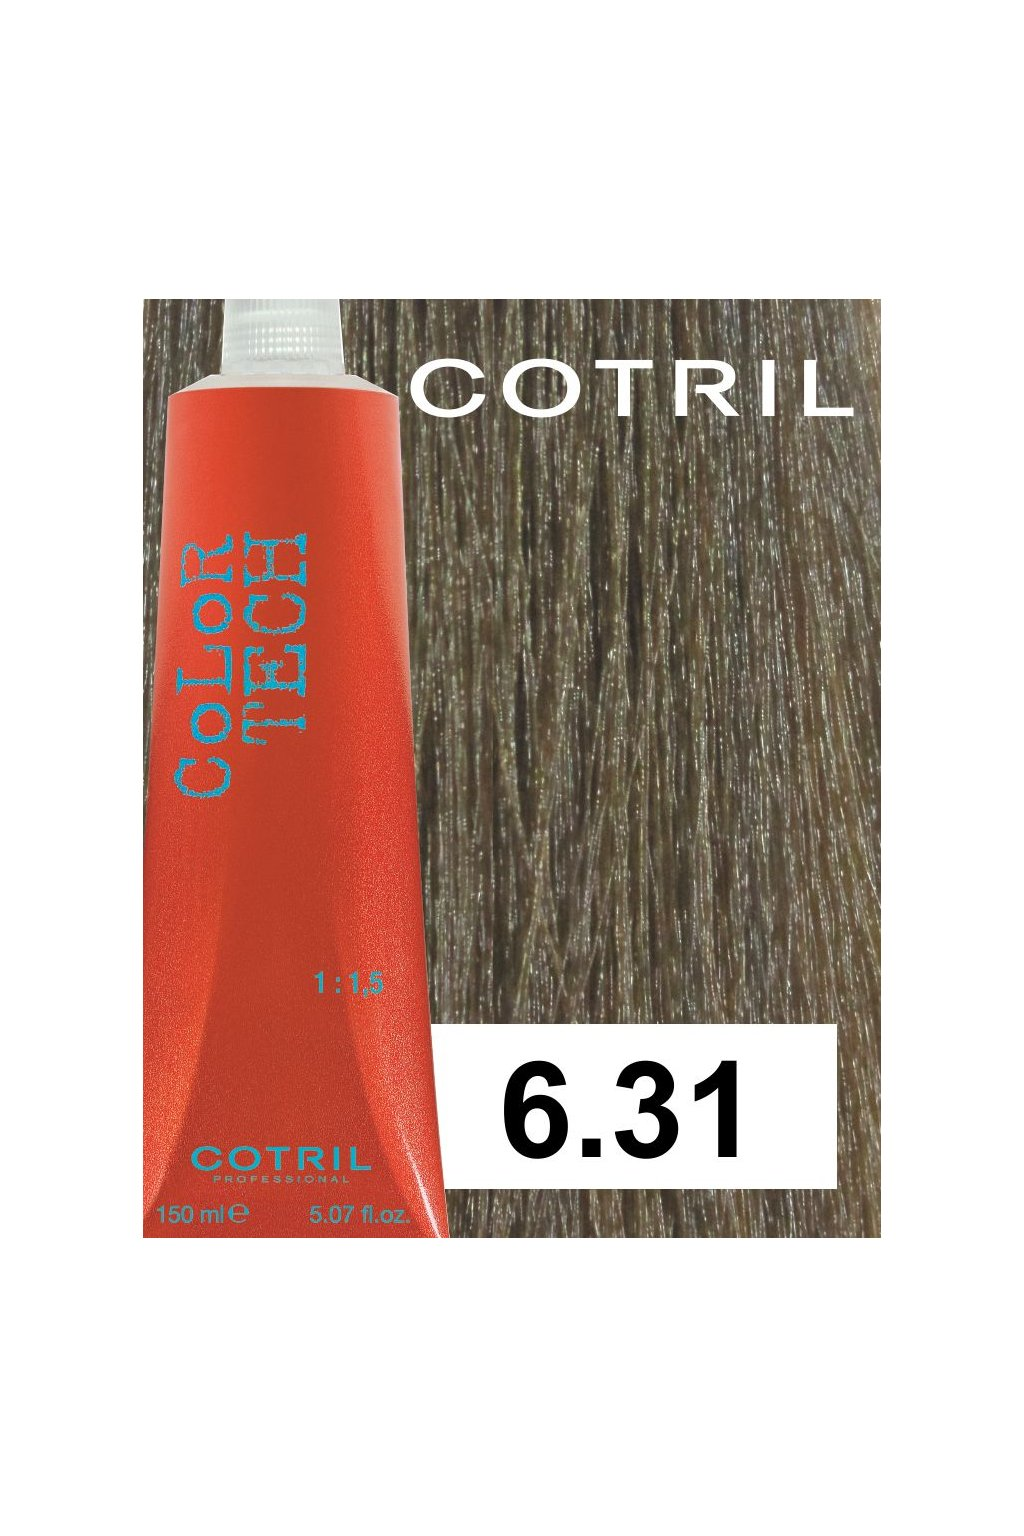 6 31 ct cotril